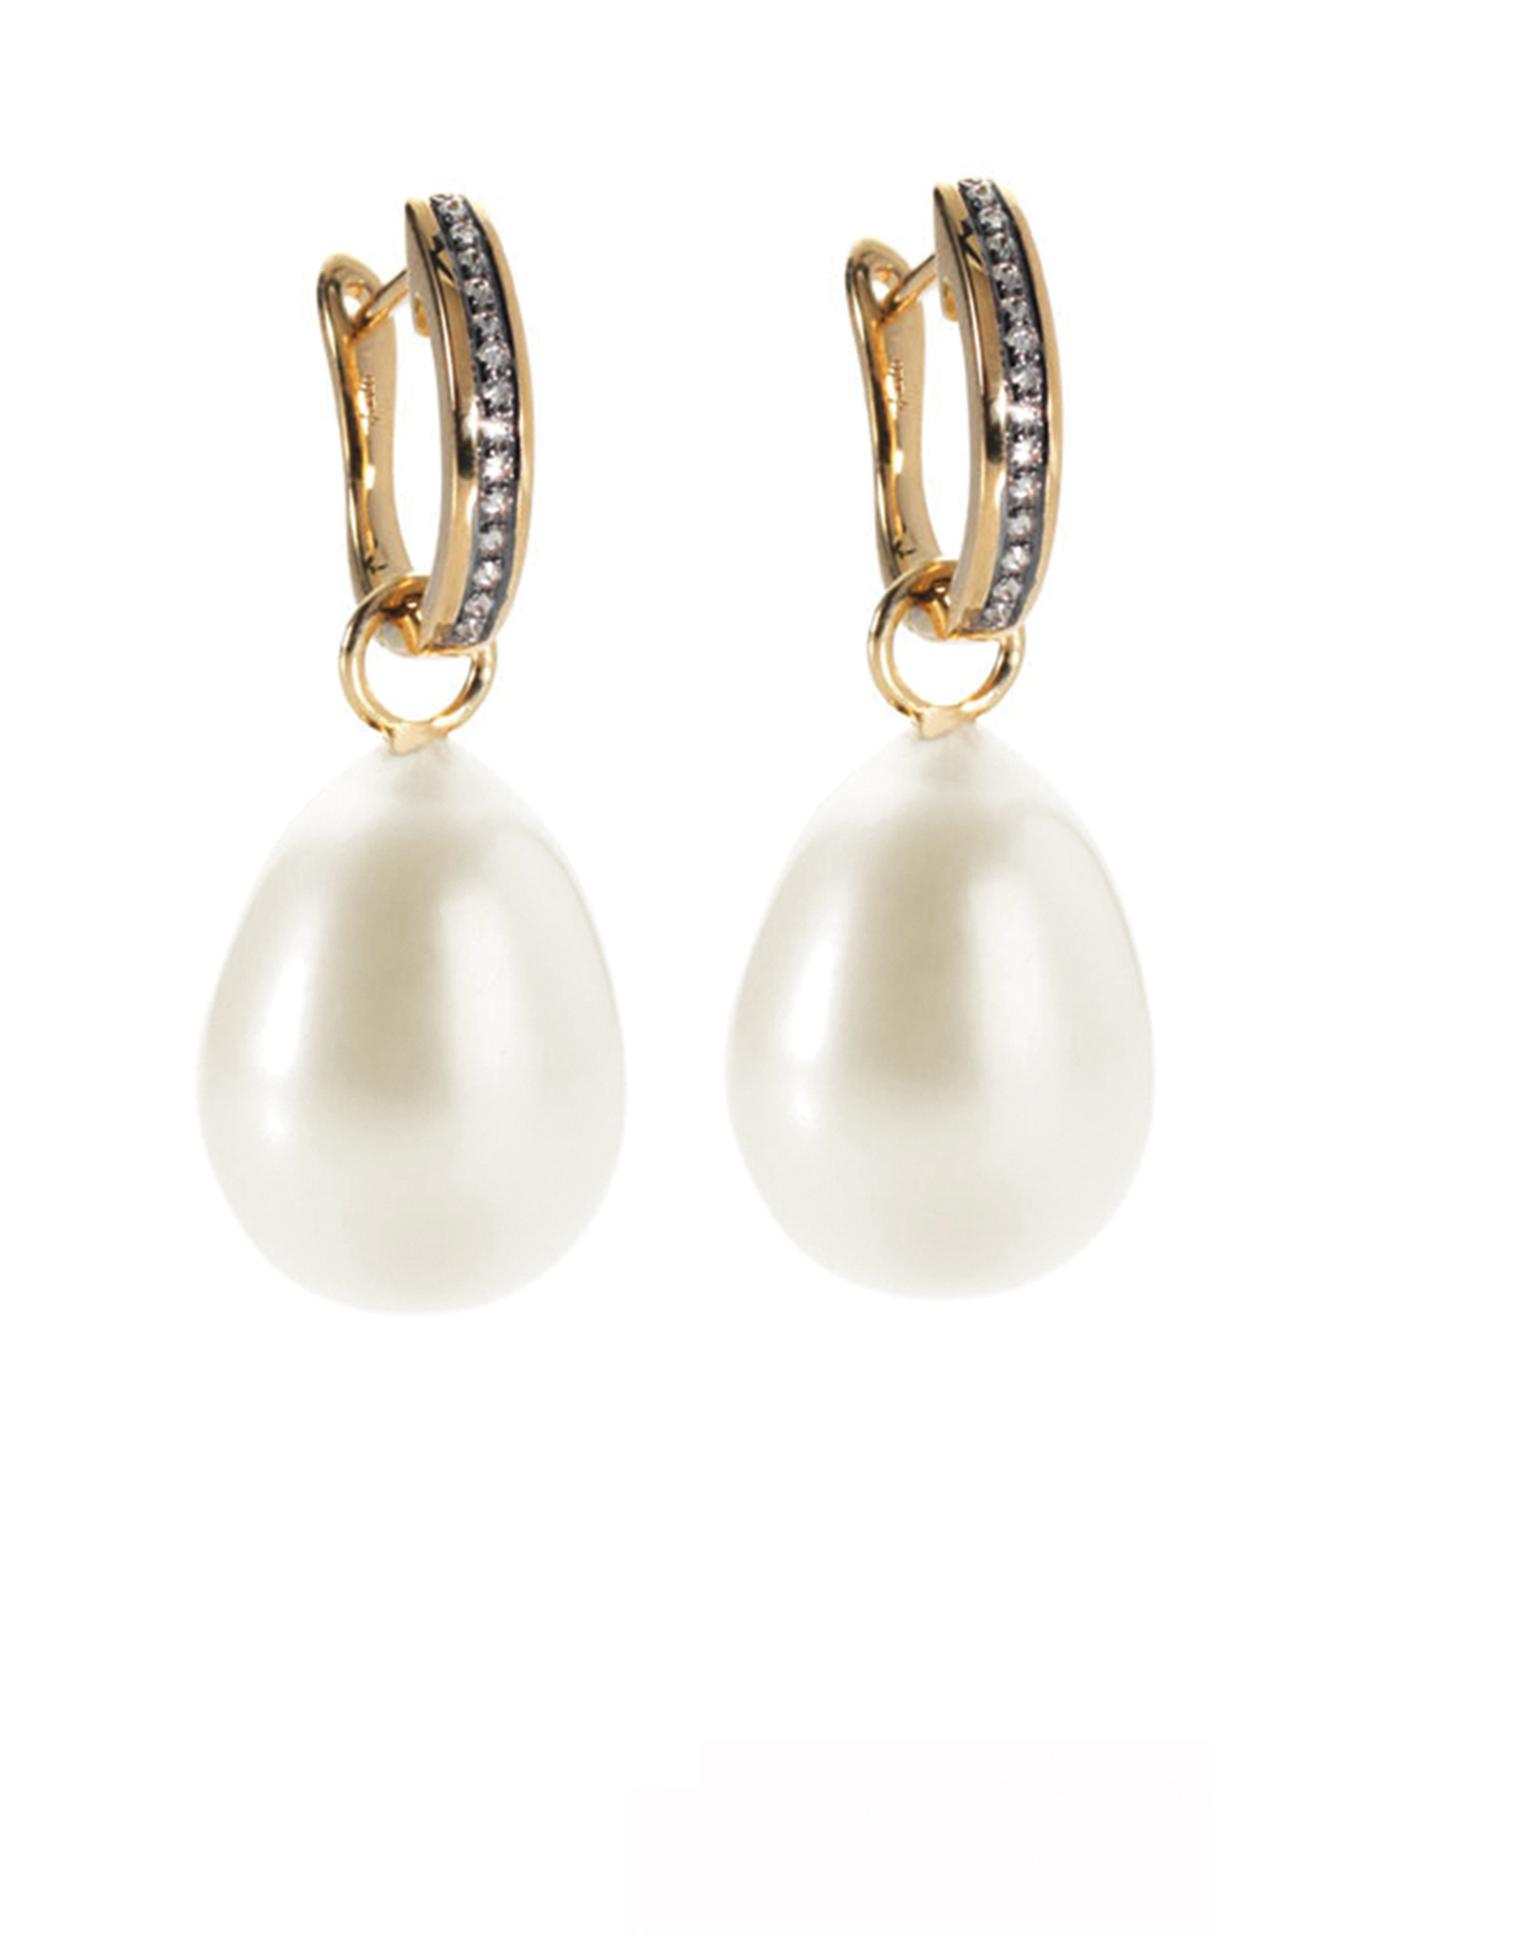 Annoushka Baroque Pearl Earrings Paired With Eclipse Yellow Gold And Diamond Porcupine Hoop